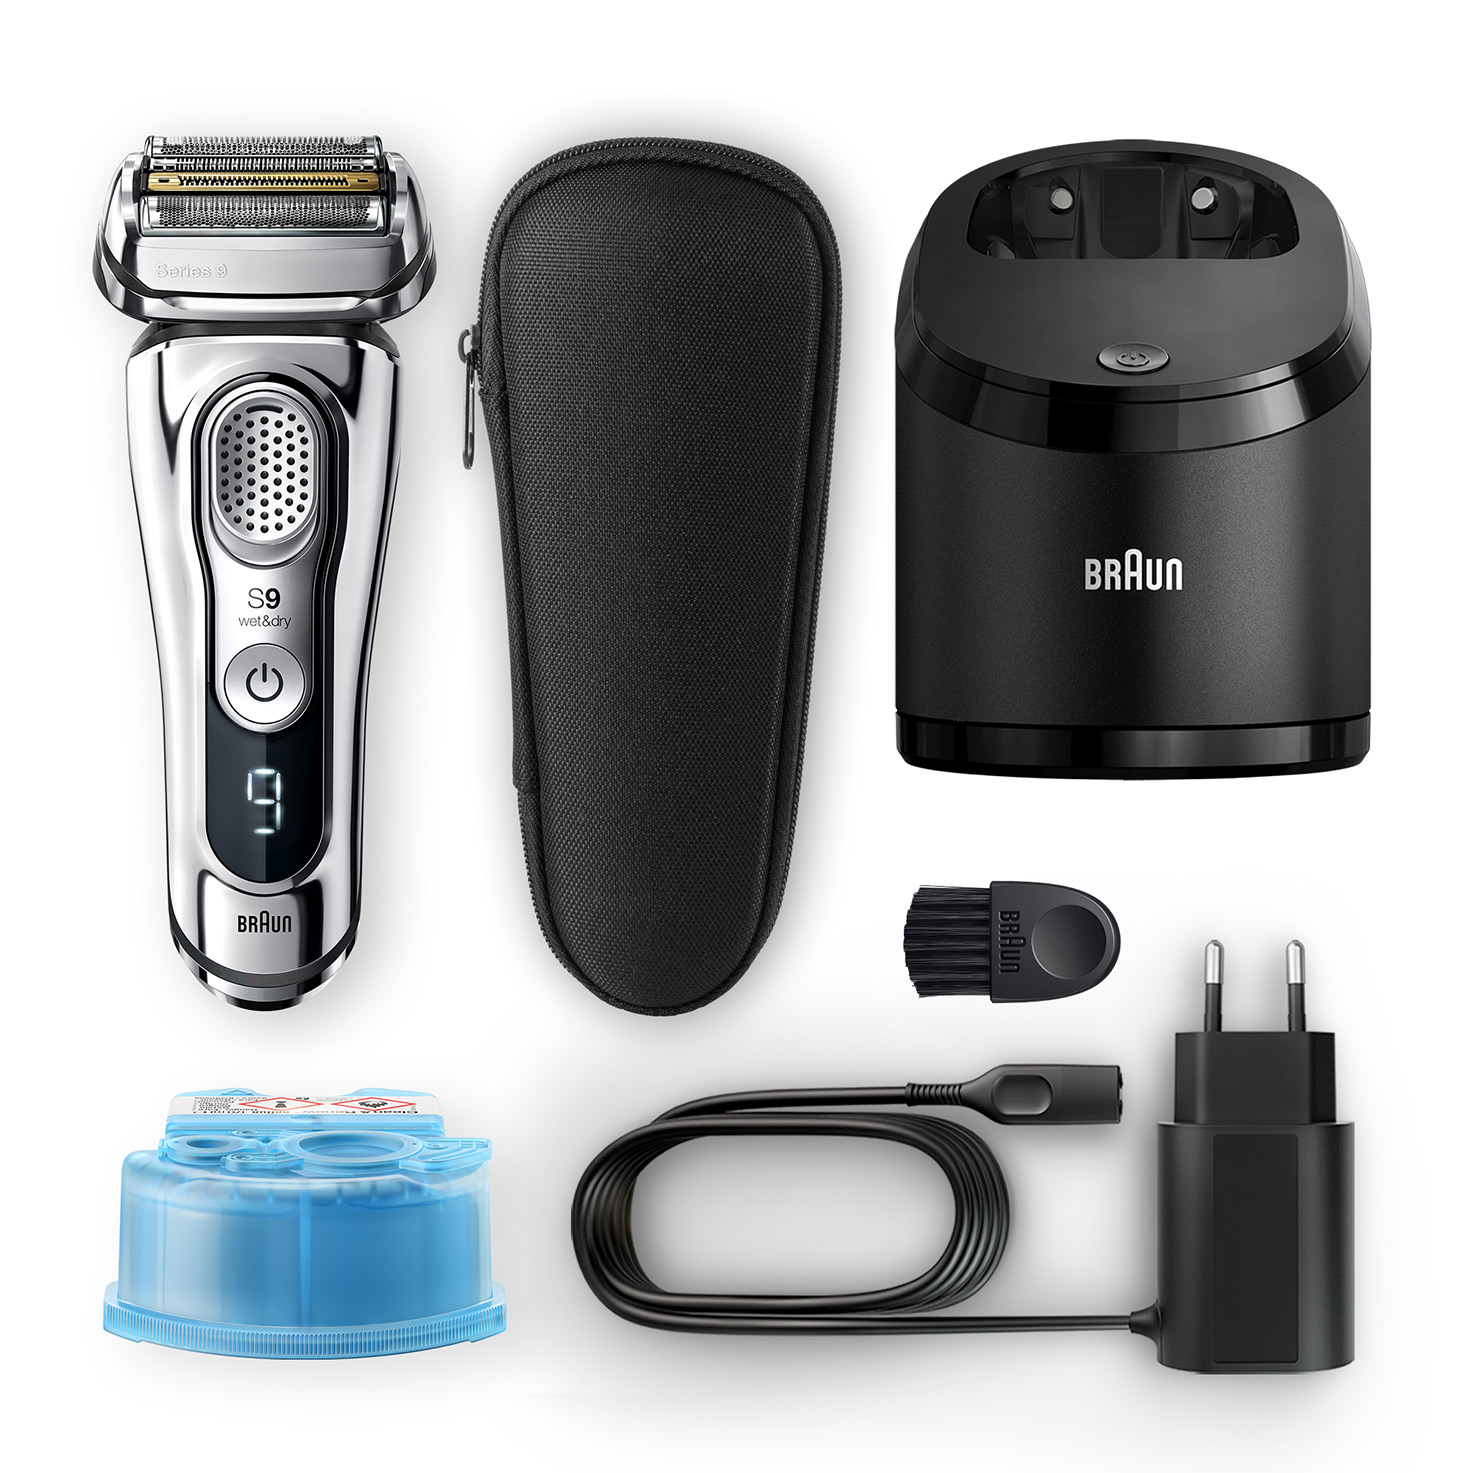 Series 9 9394cc shaver - What´s in the box